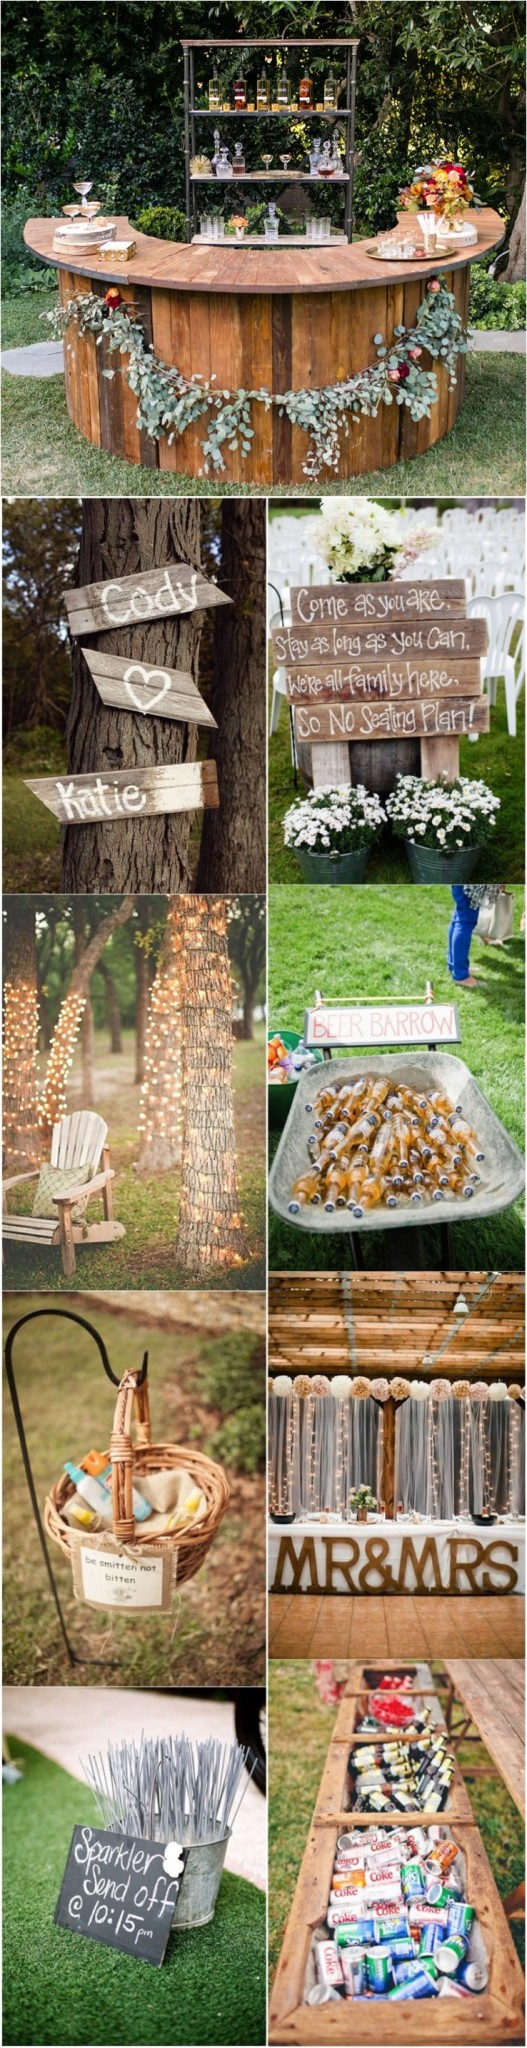 20 genius outdoor wedding ideas for Outdoor wedding reception ideas